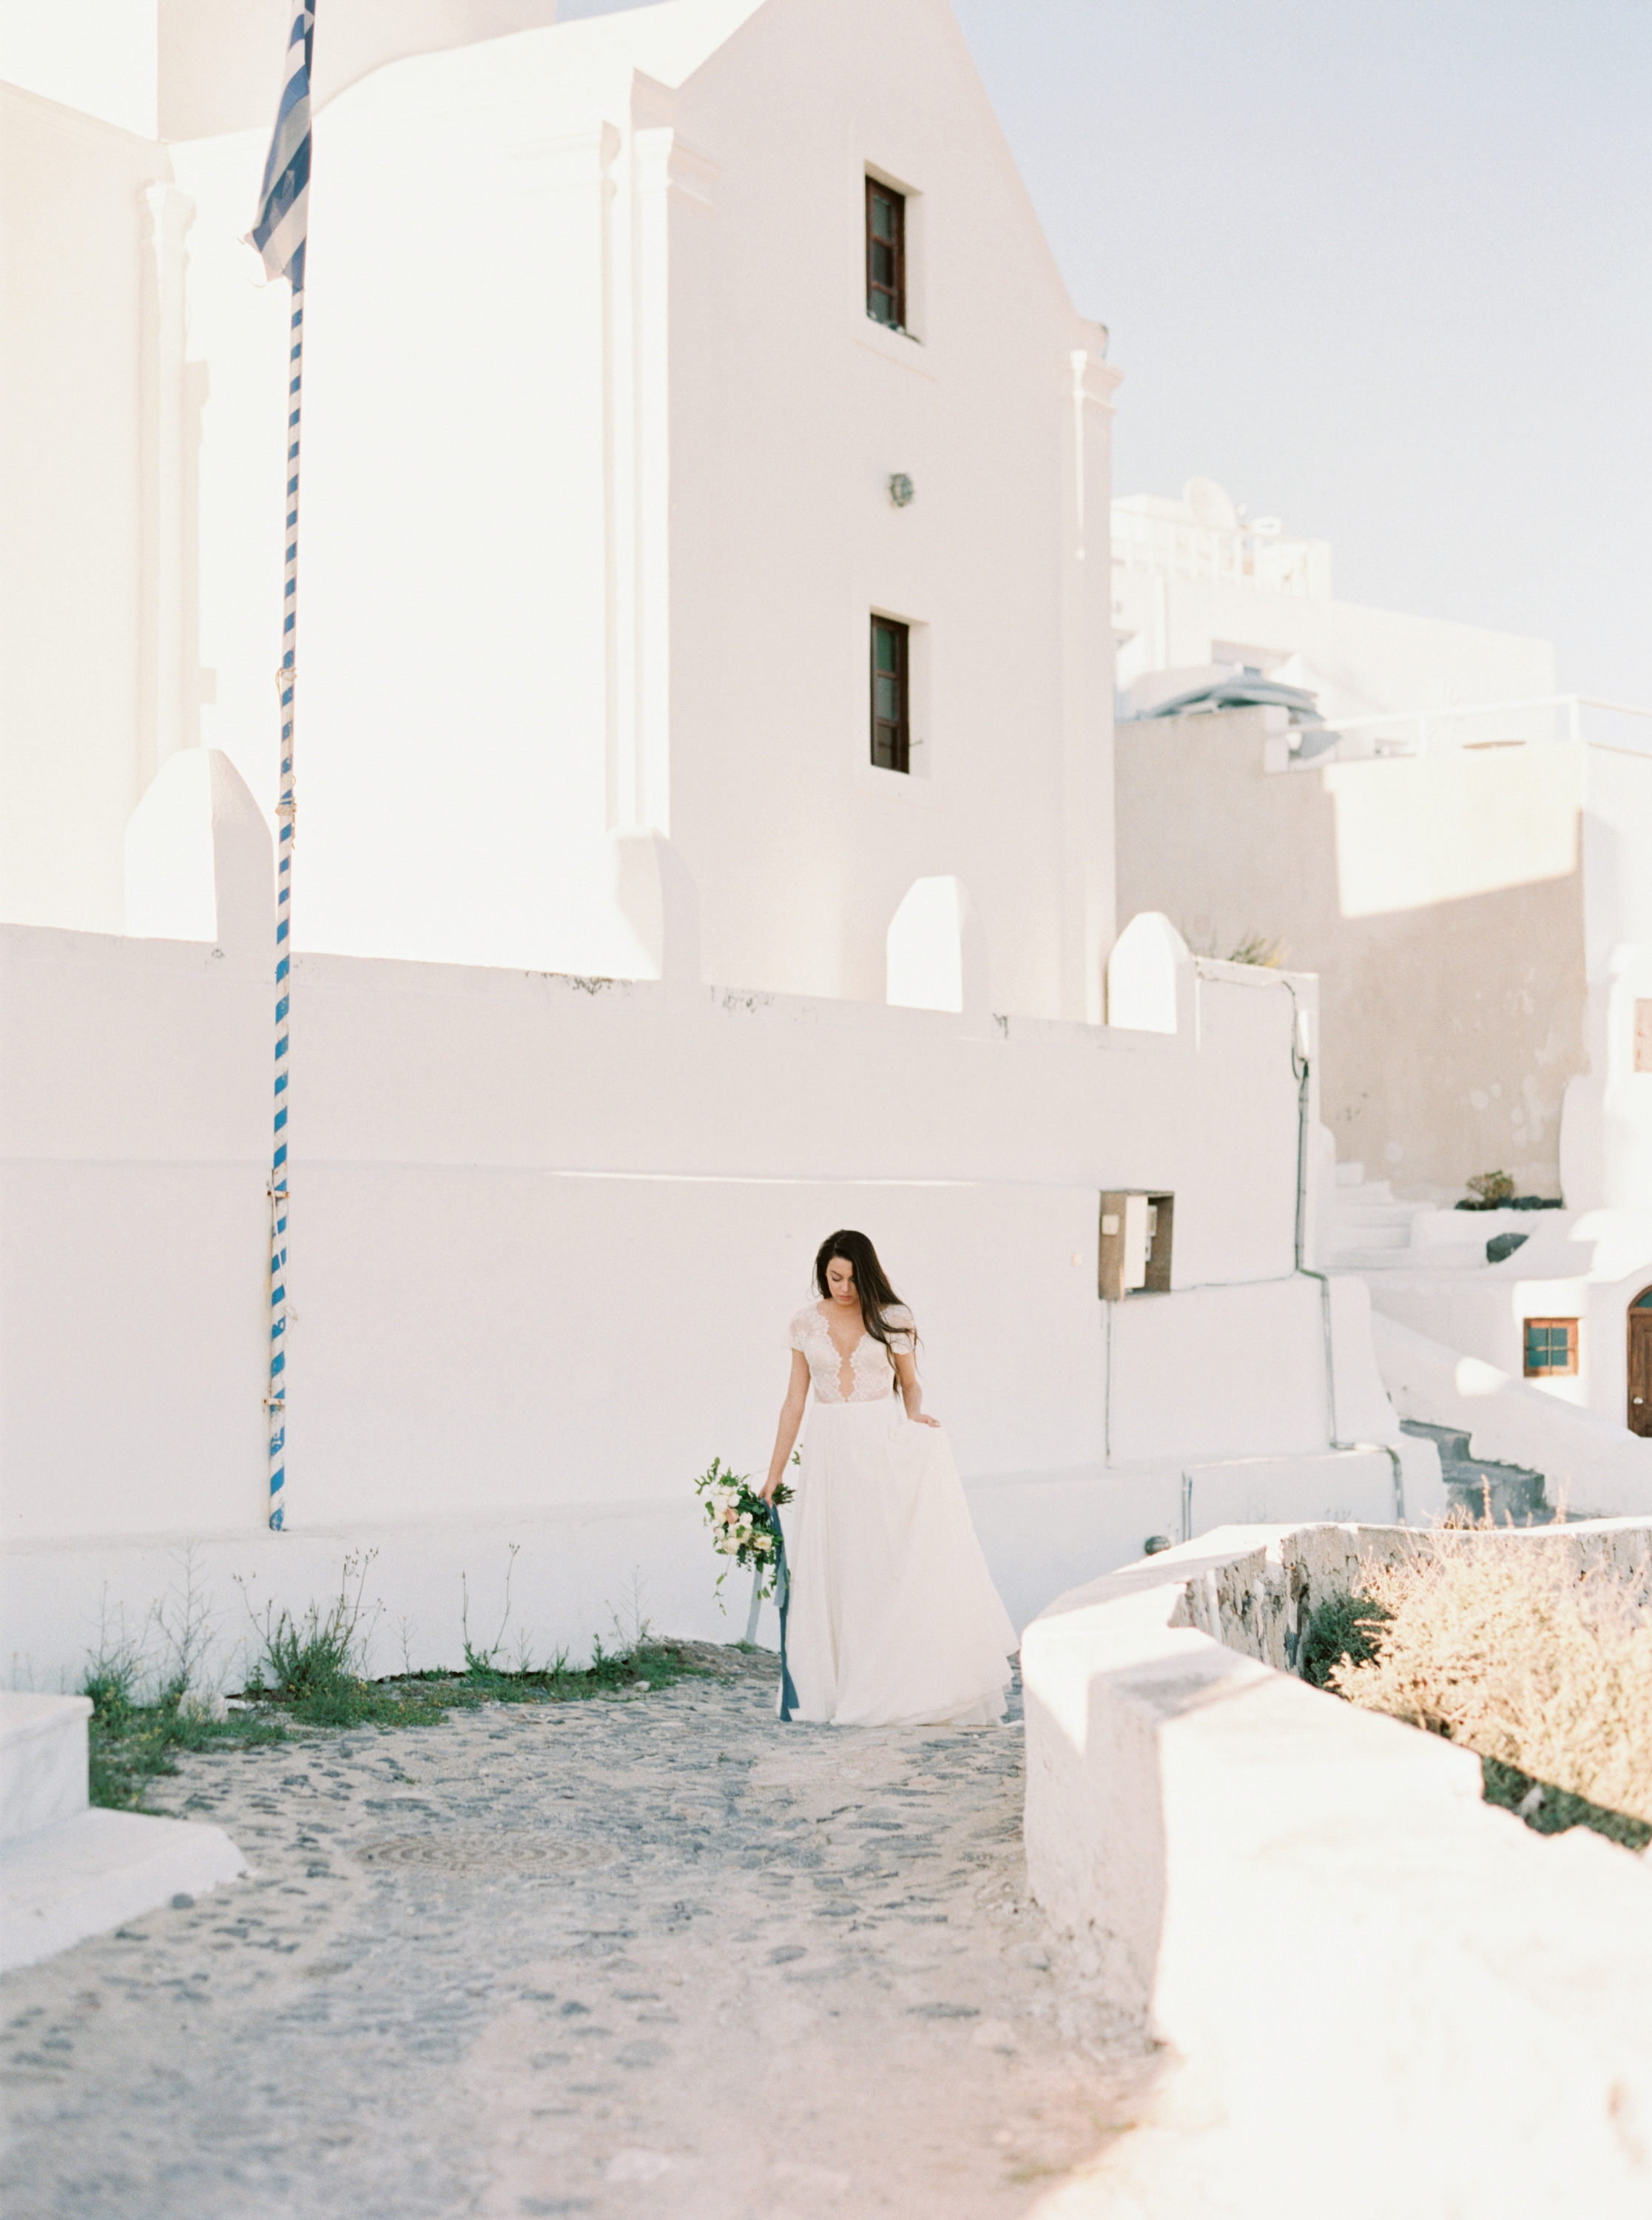 trynhphoto-photographer-destination-Santorini-Mykonos-Italy-France-wedding-photographer-destination-weddingplanner-59.jpg